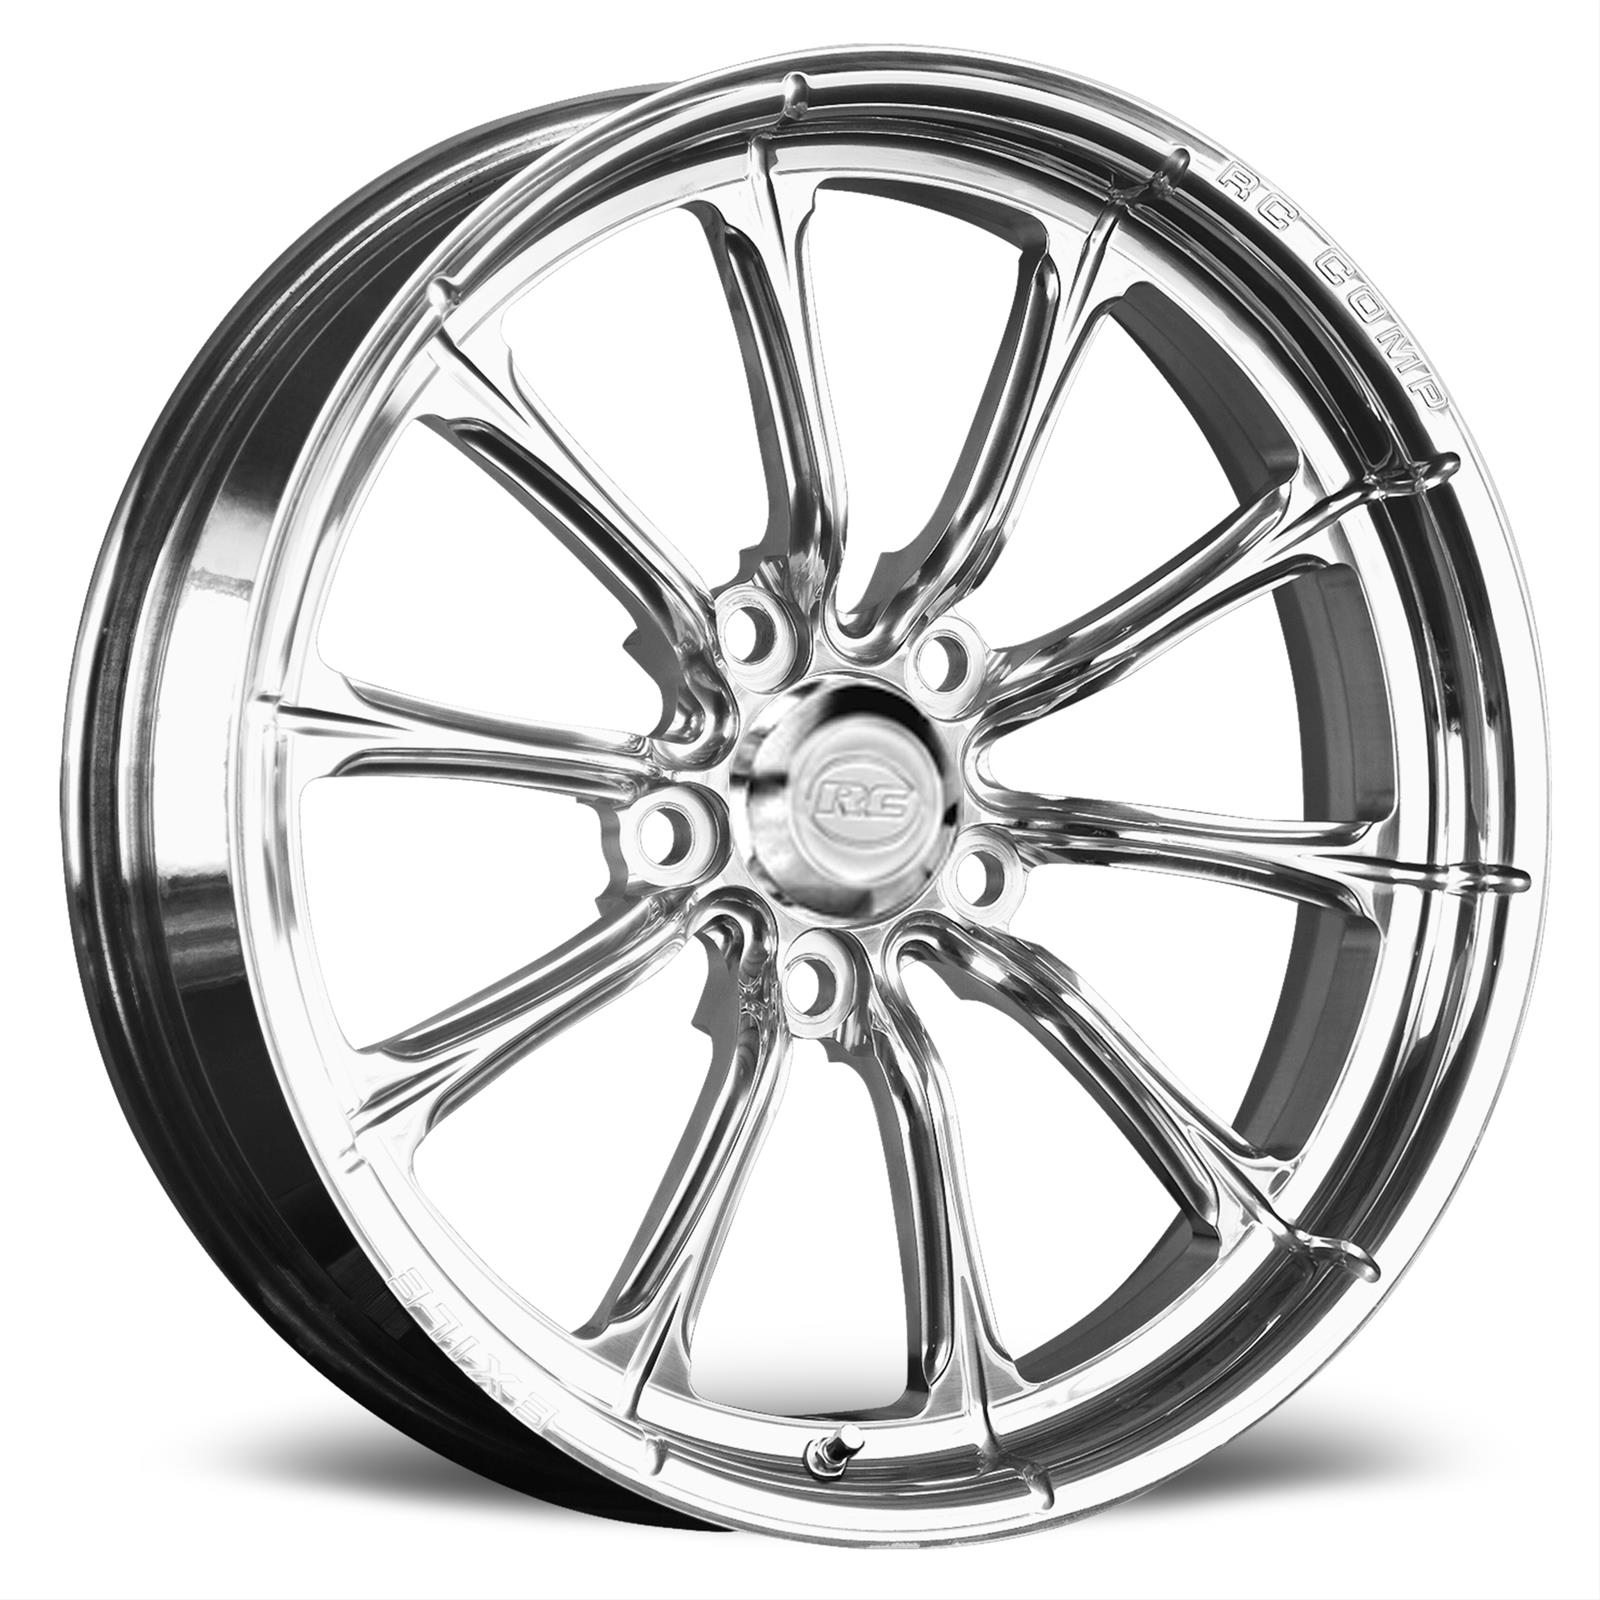 rc ponents exile polished wheels cs74532 02p free shipping on 1973 Jeep CJ5 Fiberglass White rc ponents exile polished wheels cs74532 02p free shipping on orders over 99 at summit racing